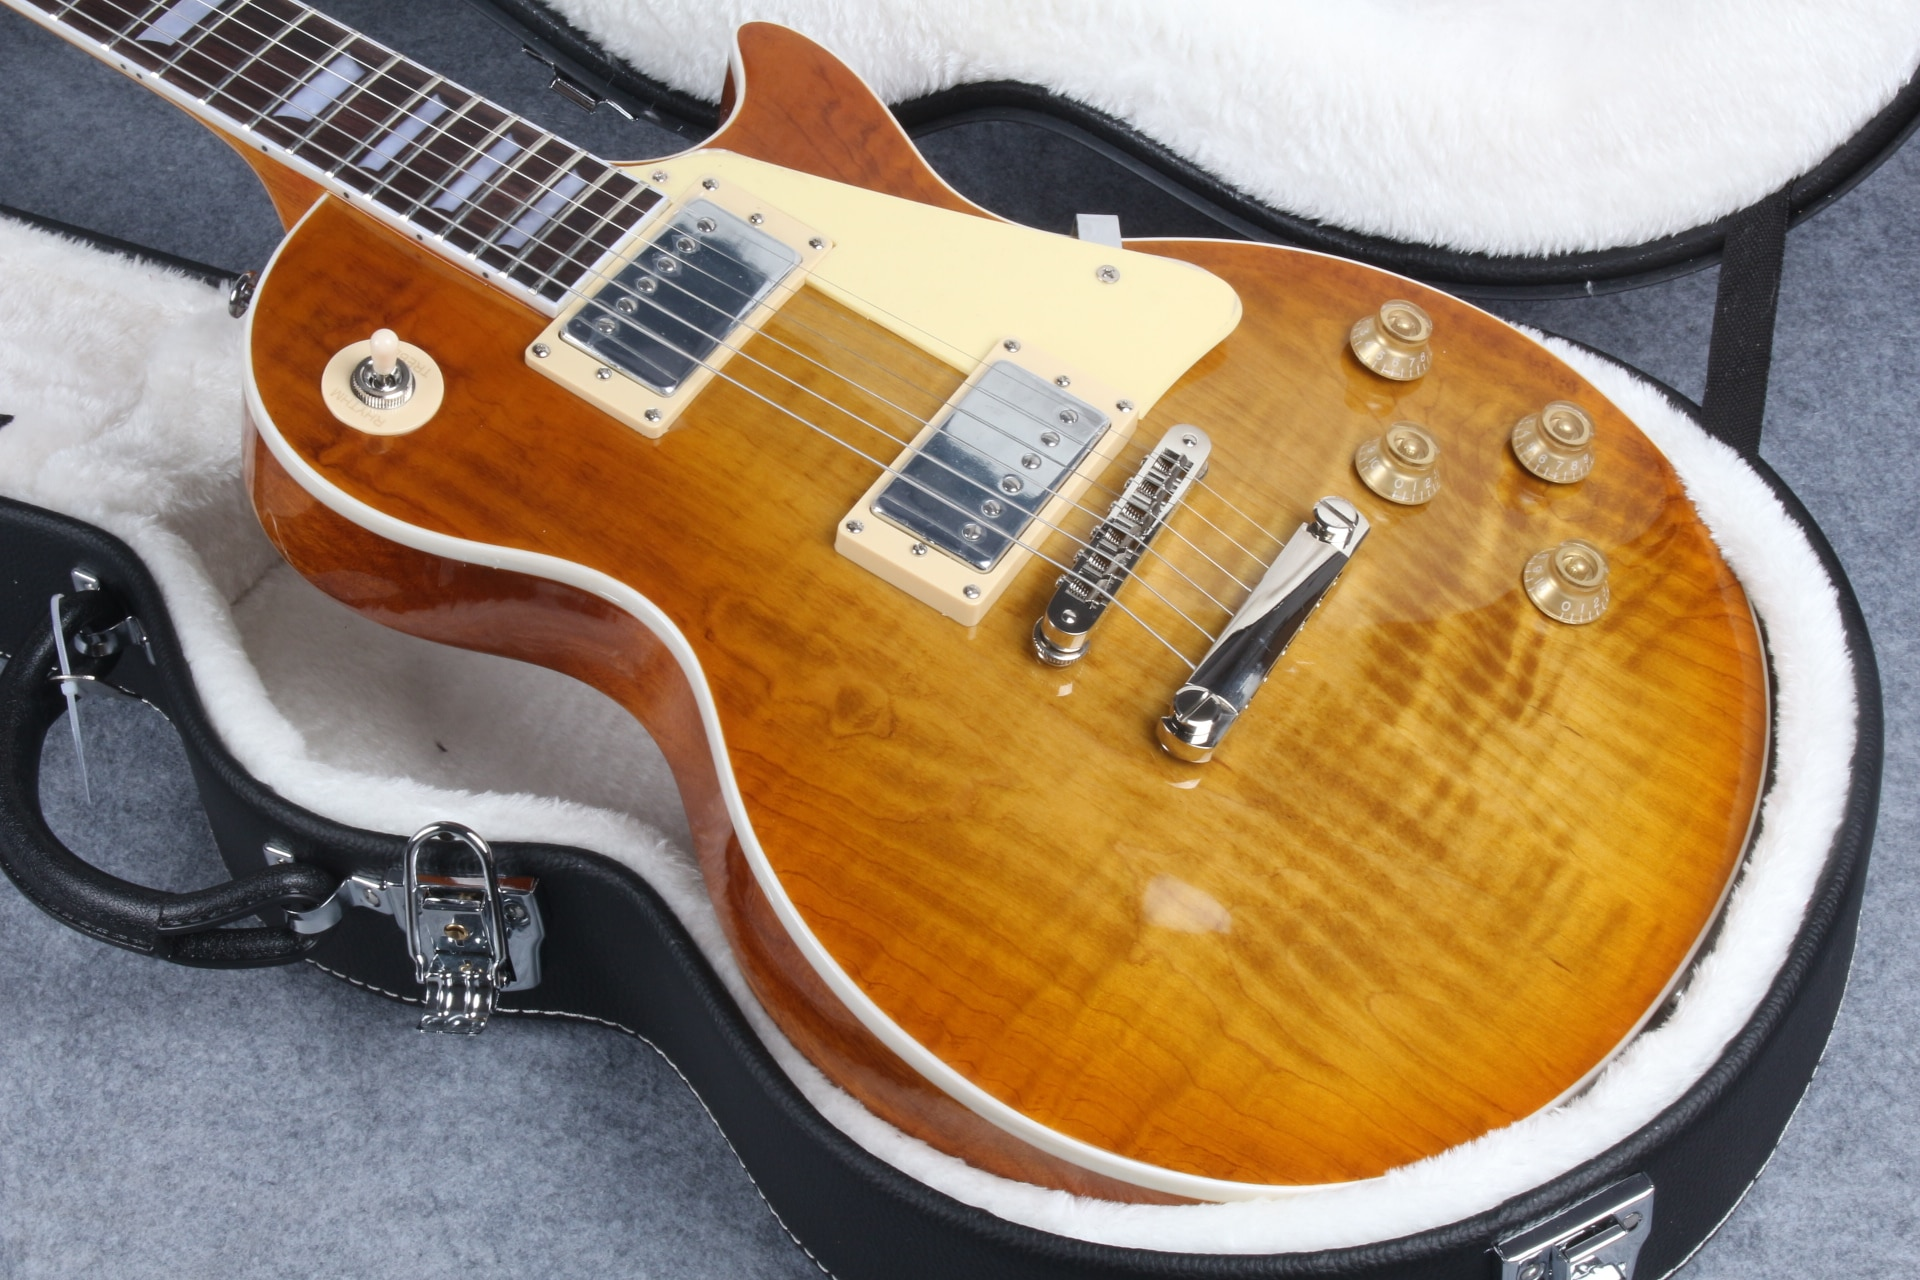 electric guitar,Honey Burst , solid maple cap, mother of pearl inlay,1 pc body 1 pc neck, frets binding, quality guitar